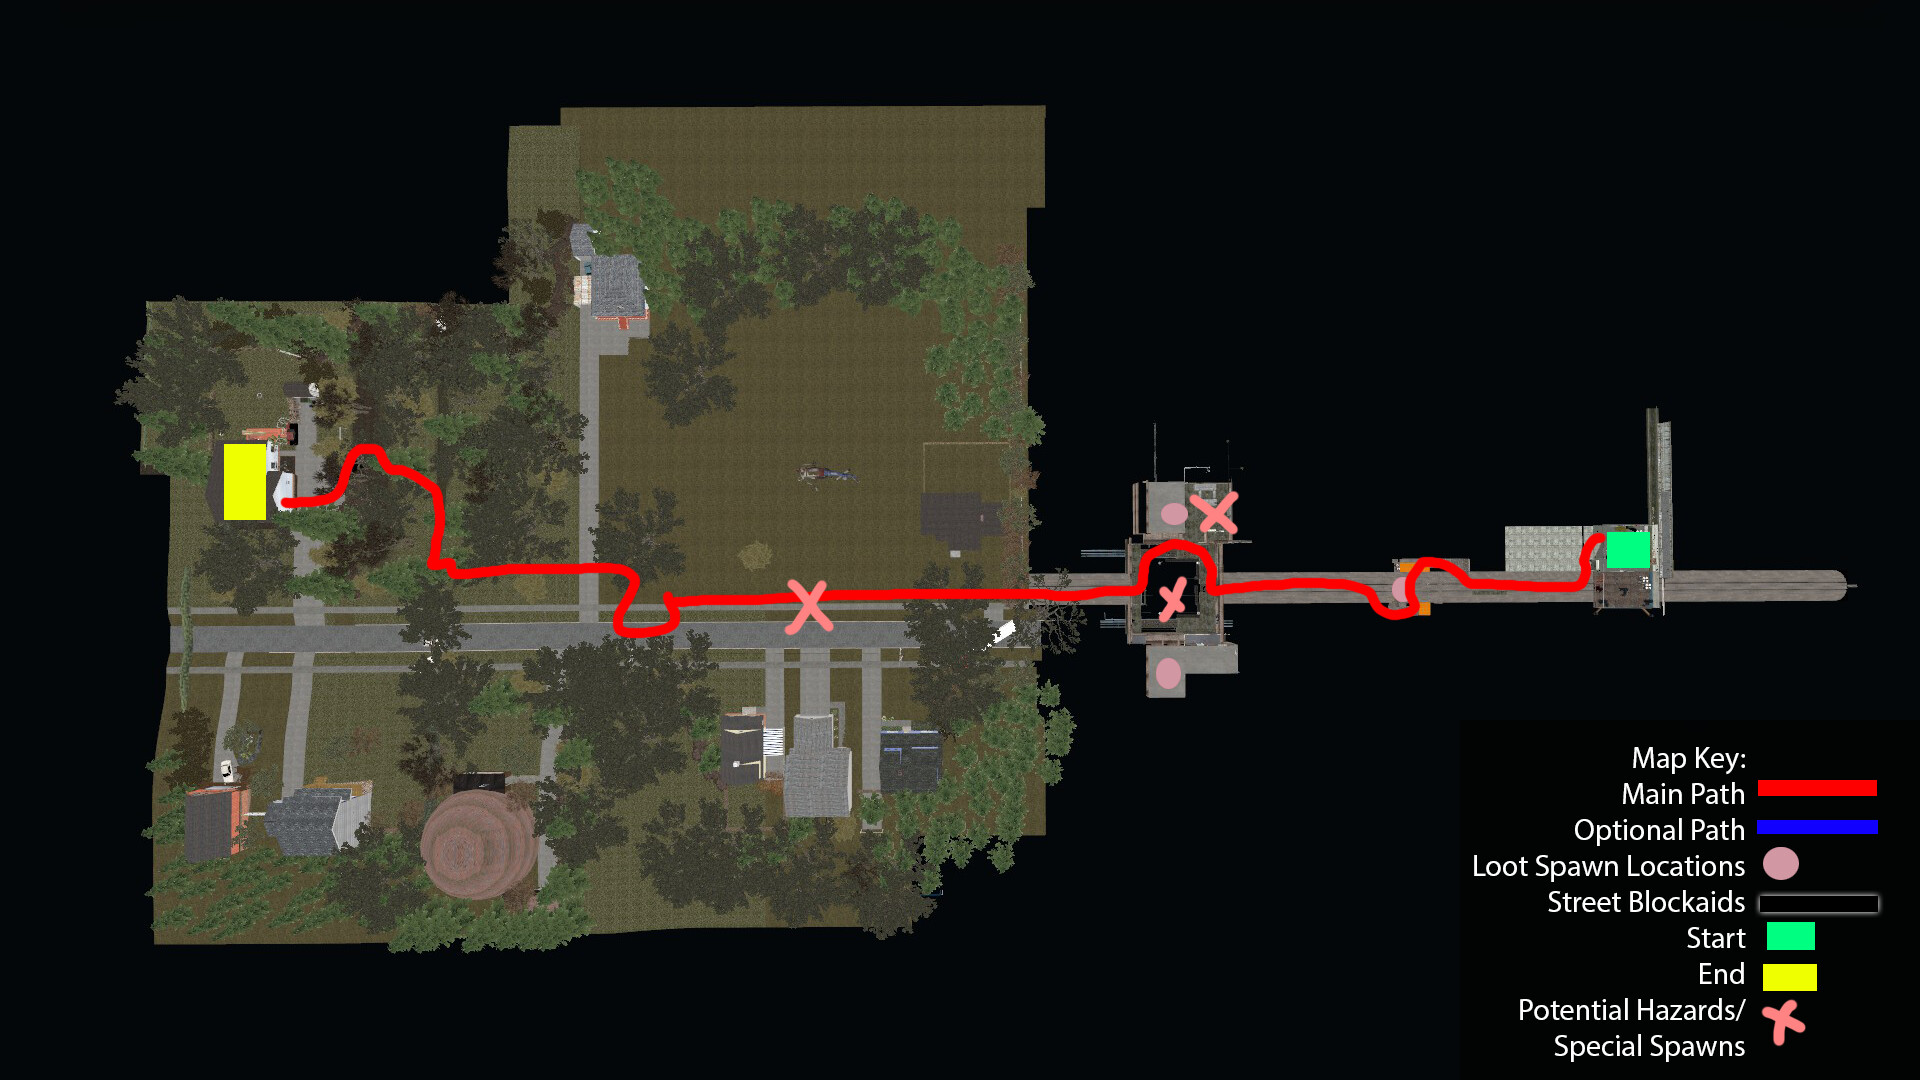 Top down view of the Sewer level. Players must follow the red path, this level is designed to be strictly linear with a few areas that move the player around to help break this up.